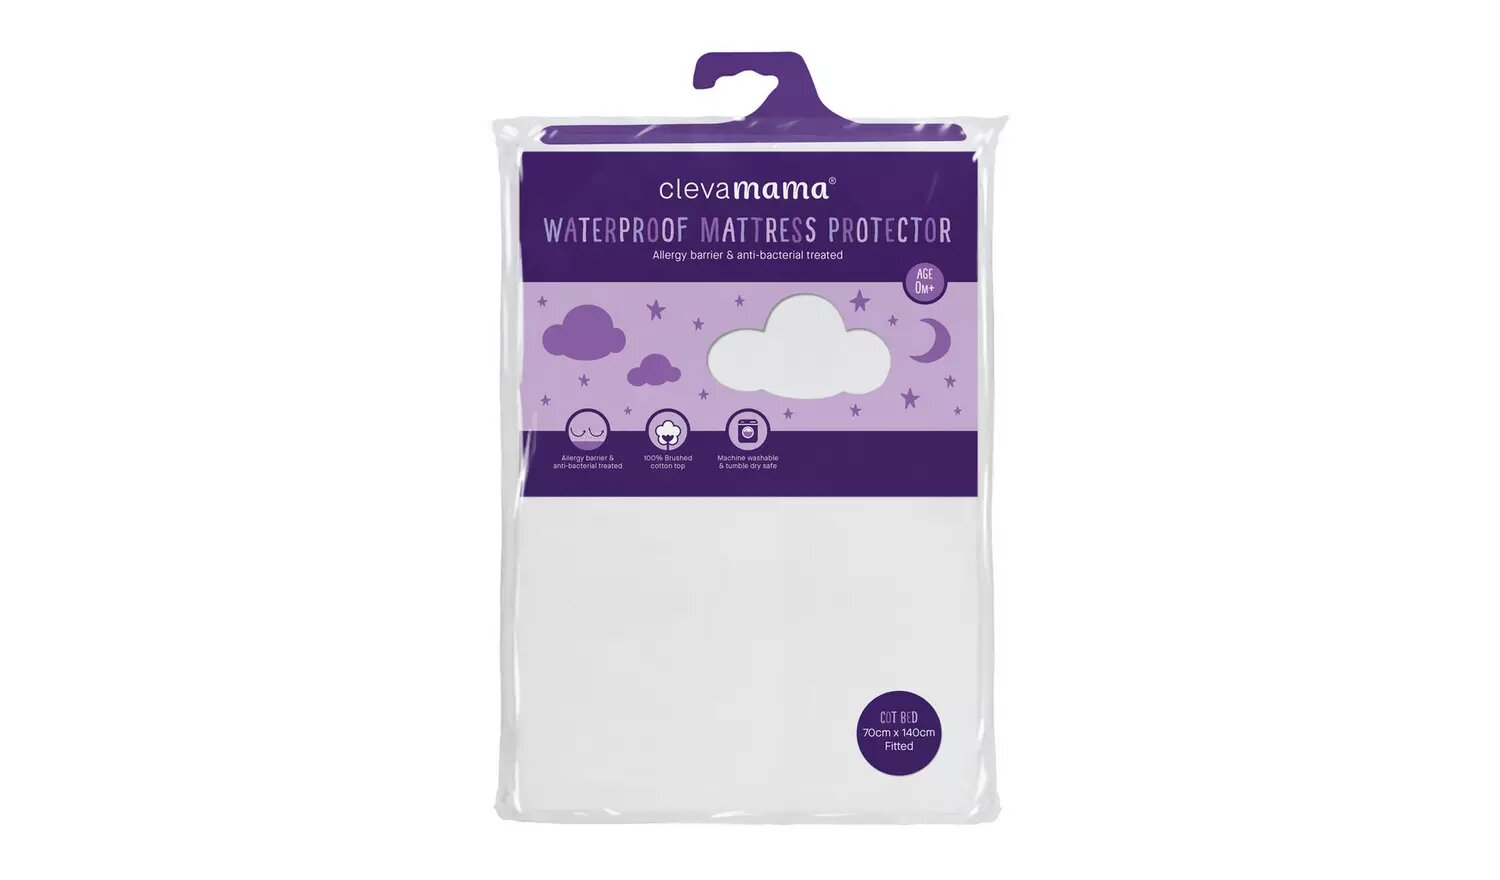 Clevamama Waterproof Mattress Protector Cot Bed.